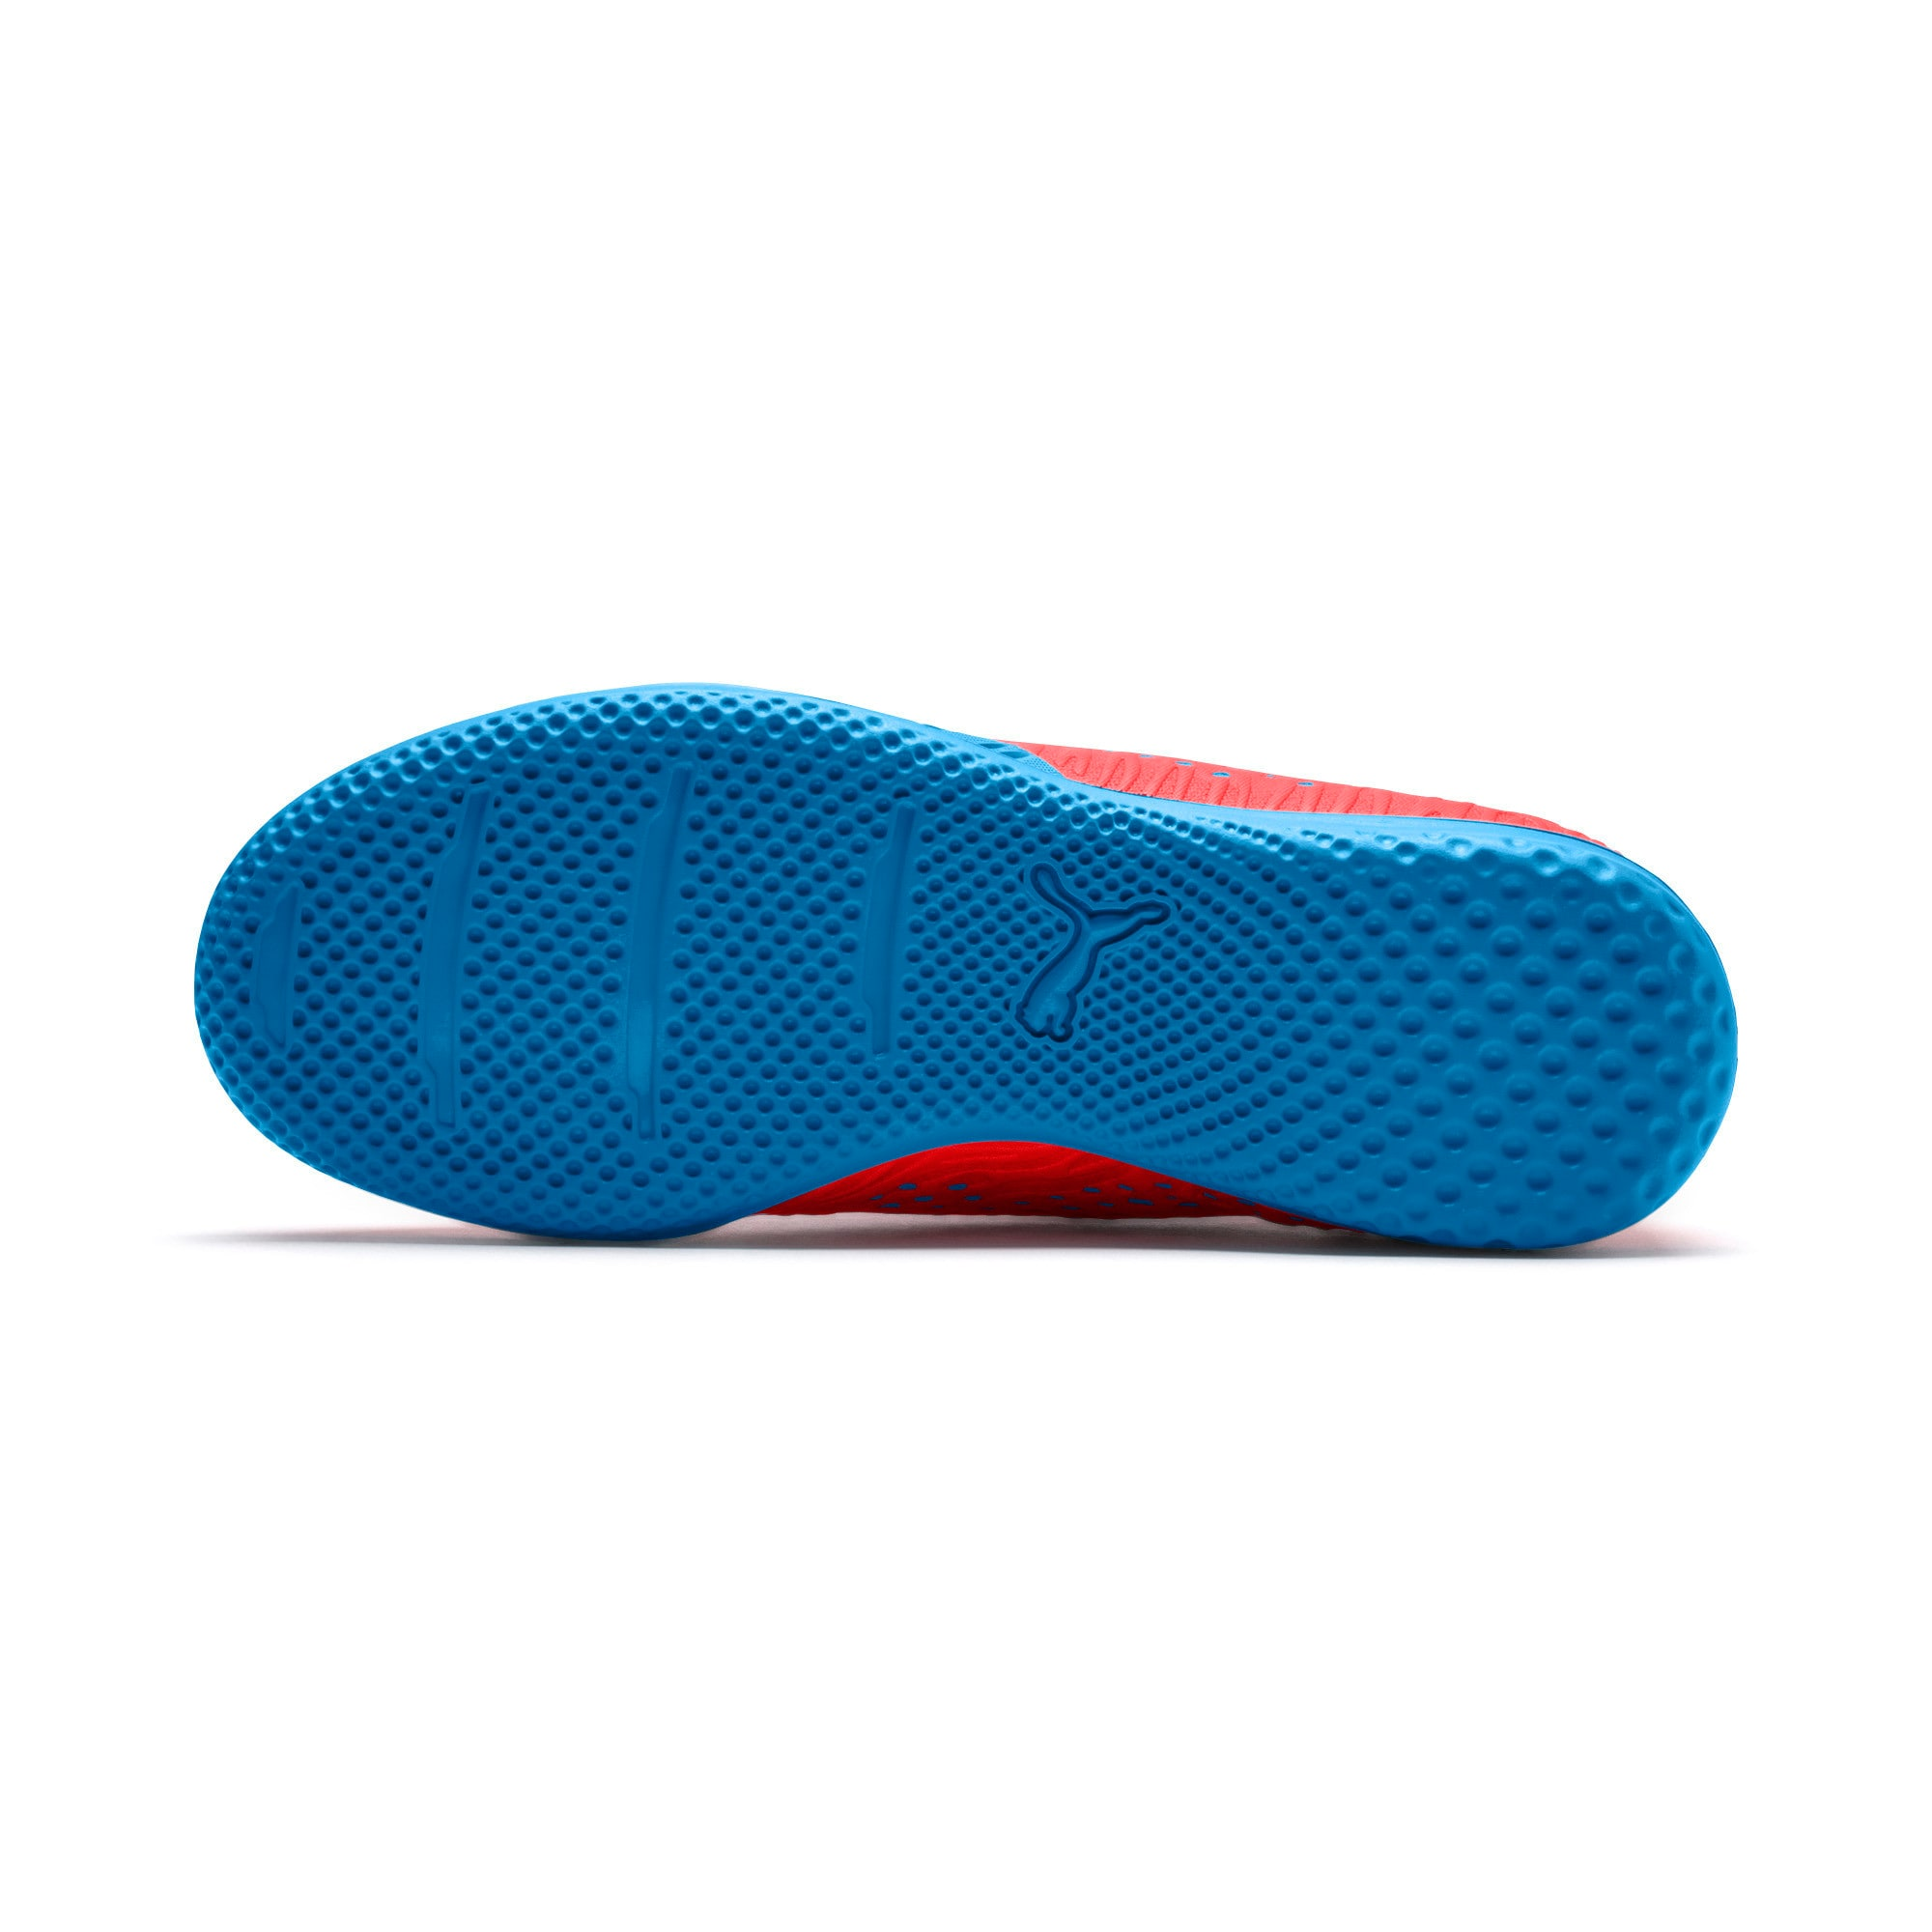 Thumbnail 4 of FUTURE 19.4 IT Soccer Shoes JR, Red Blast-Bleu Azur, medium